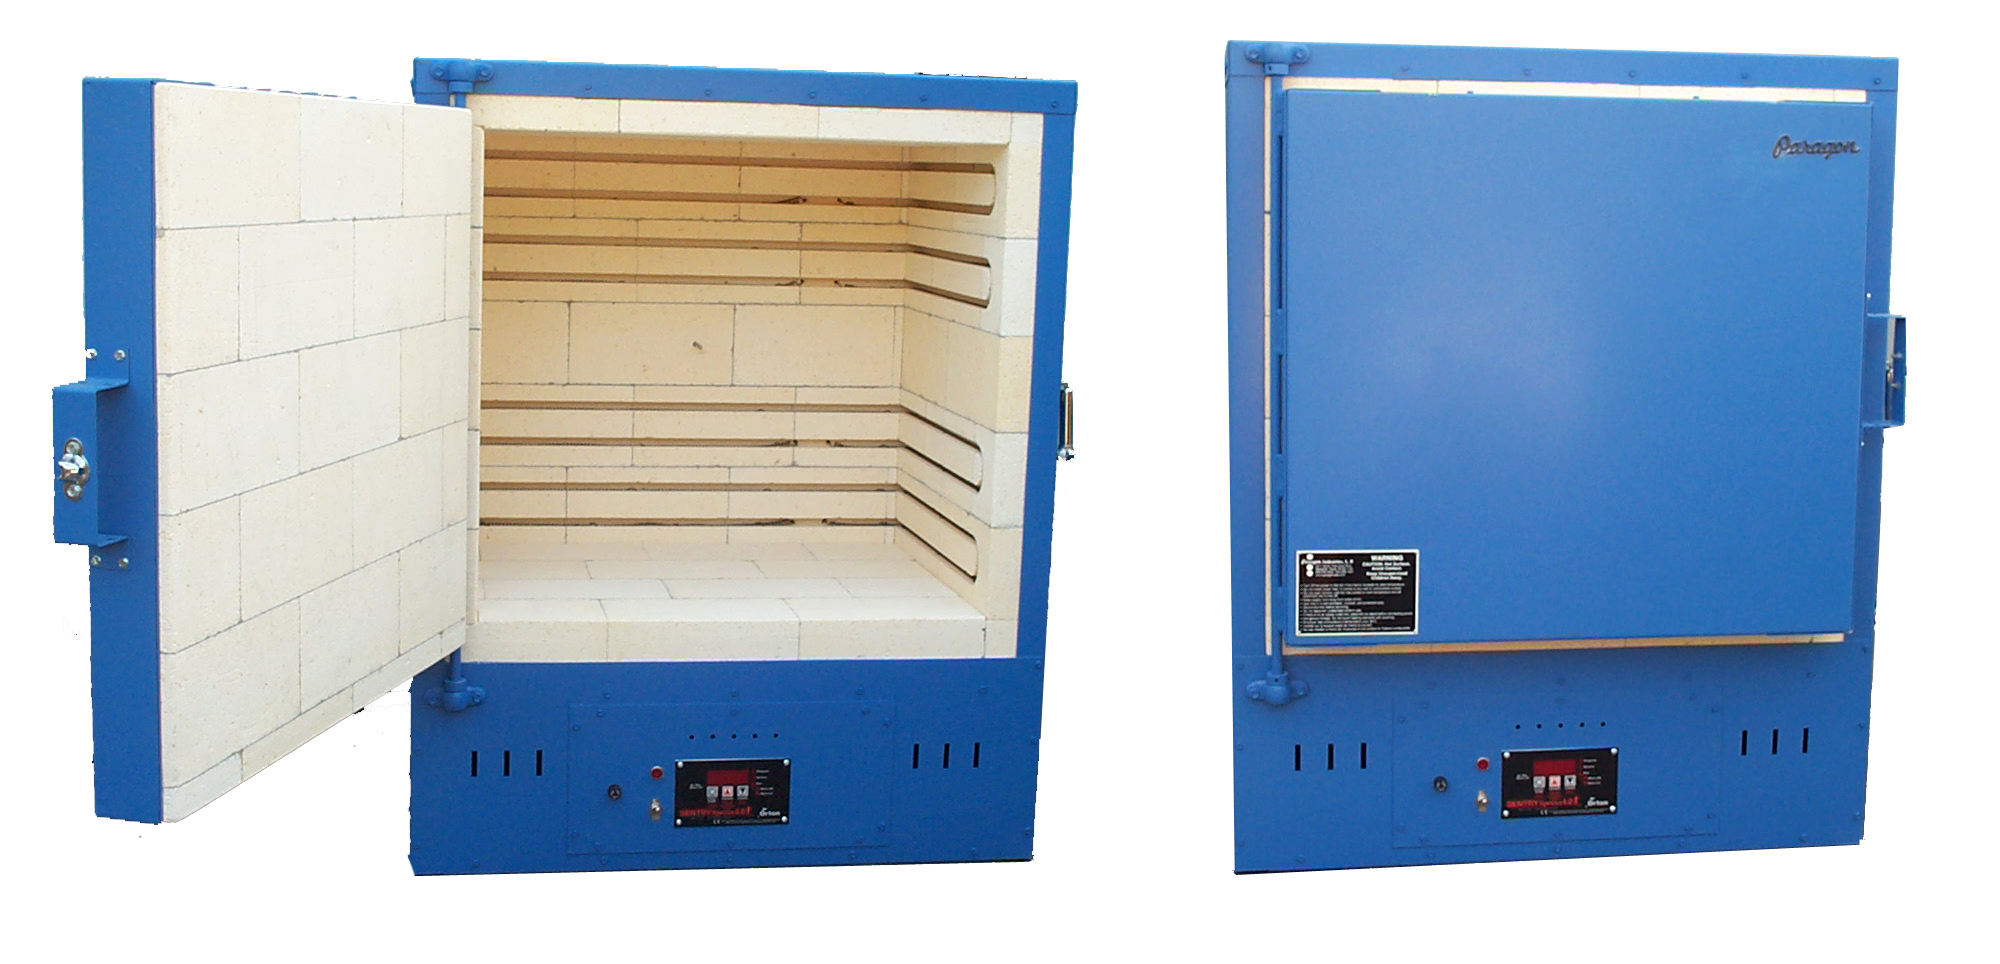 Paragon F747 Digital Kiln